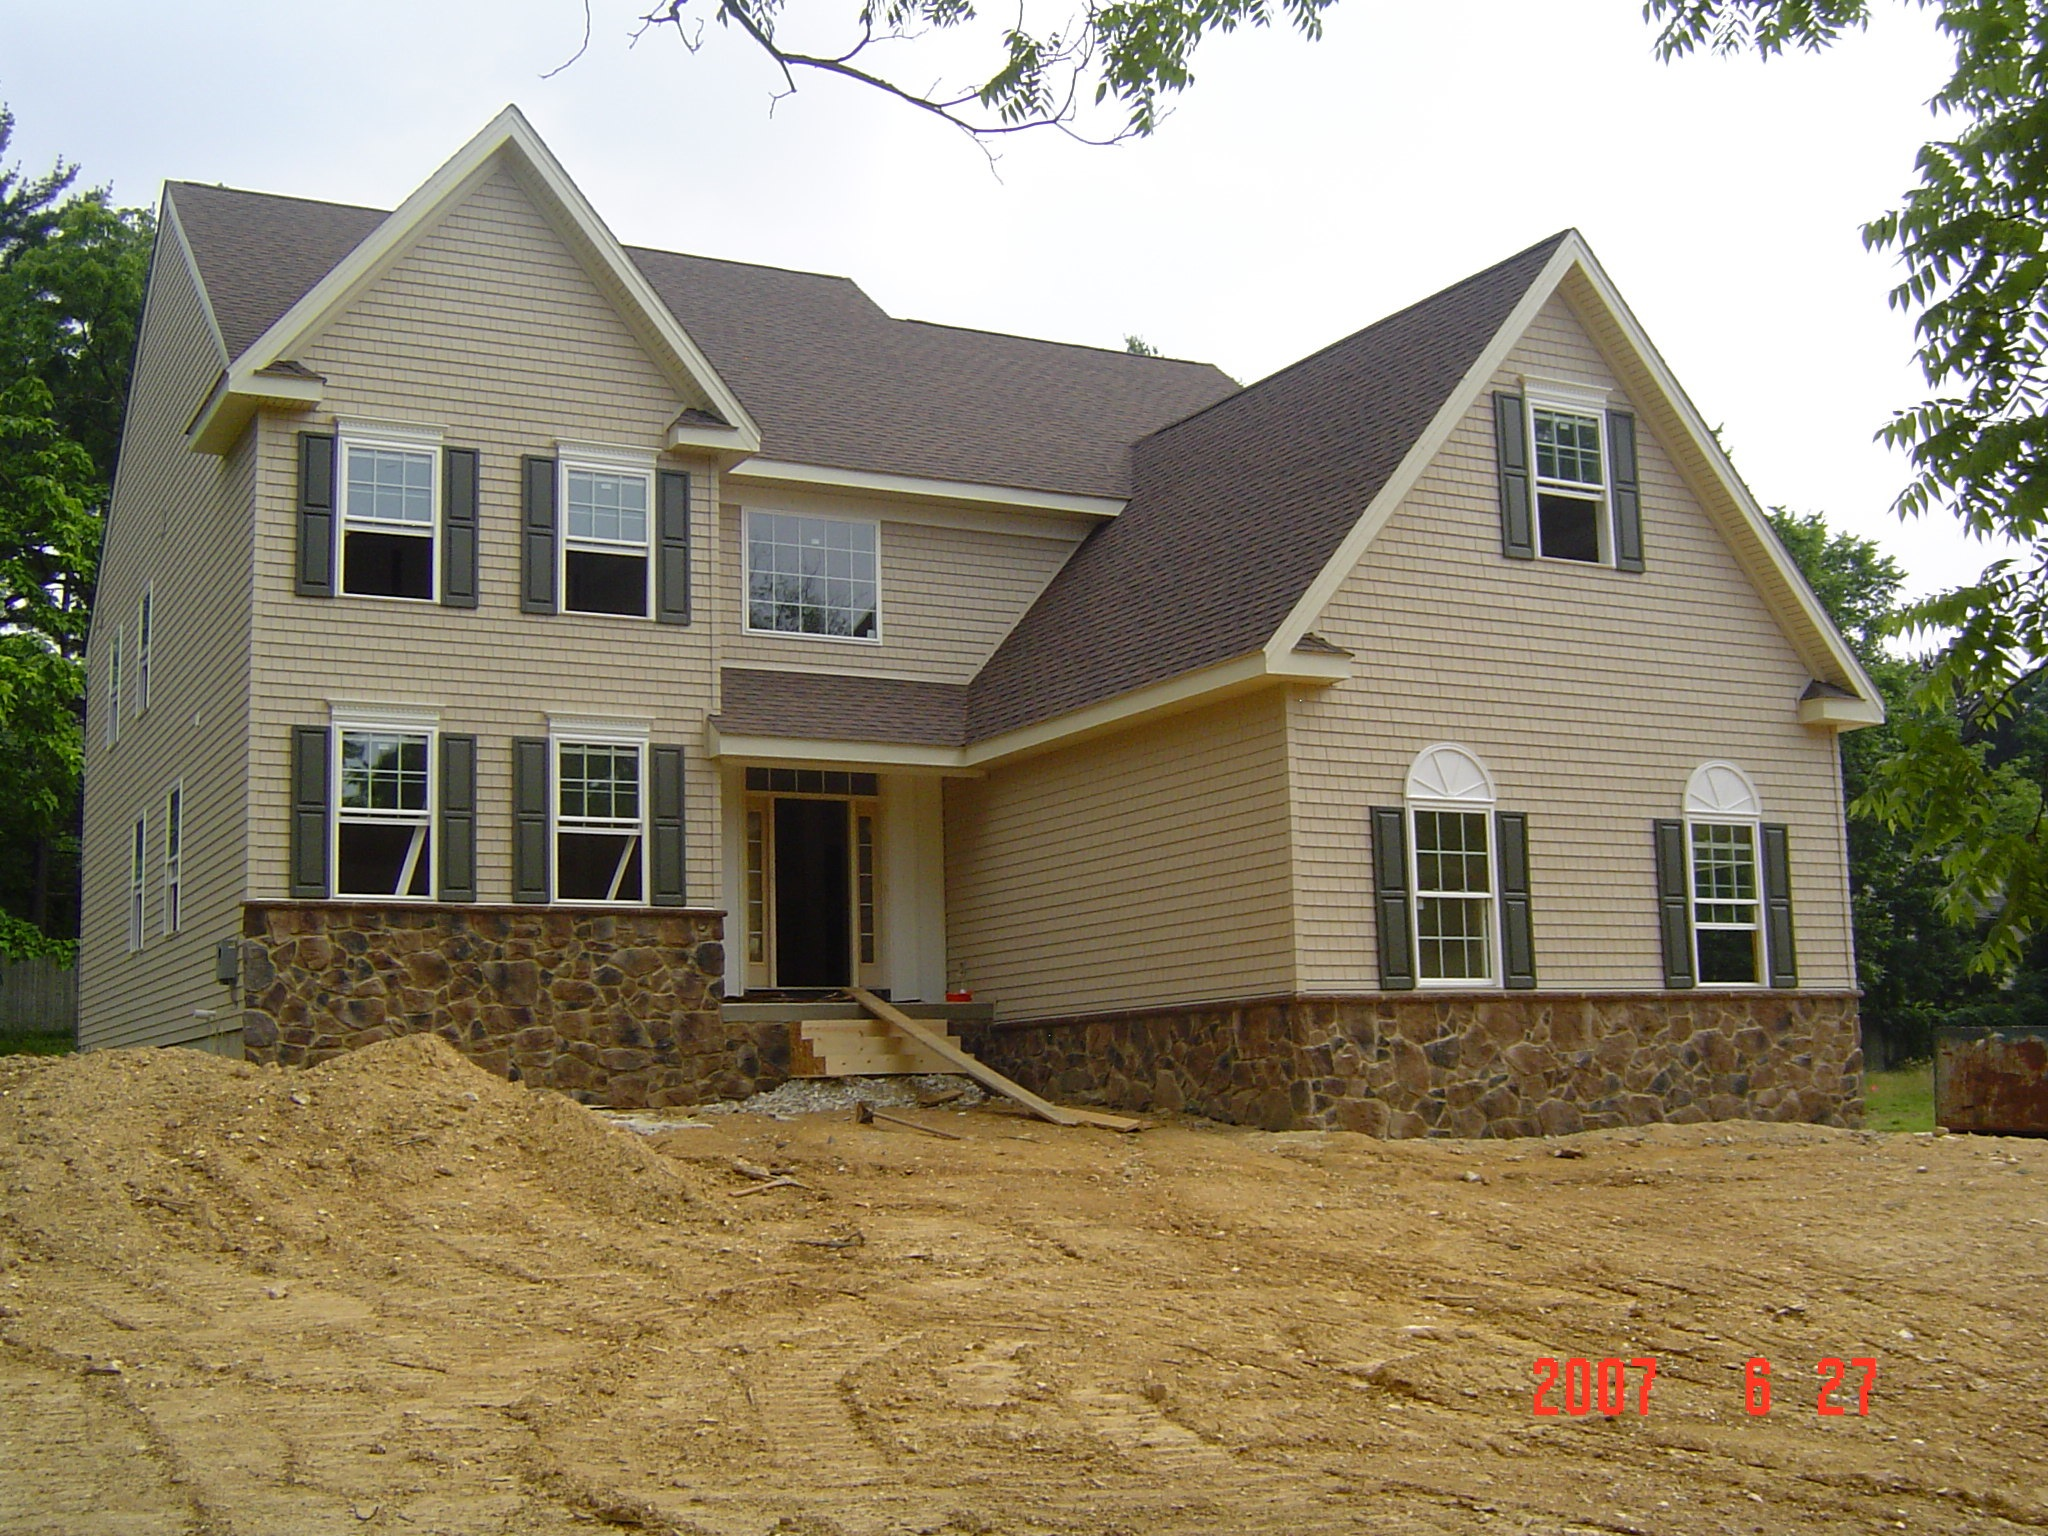 Excellent Roofing and Siding Contractor Roofing Repair Roofing Services  TU53